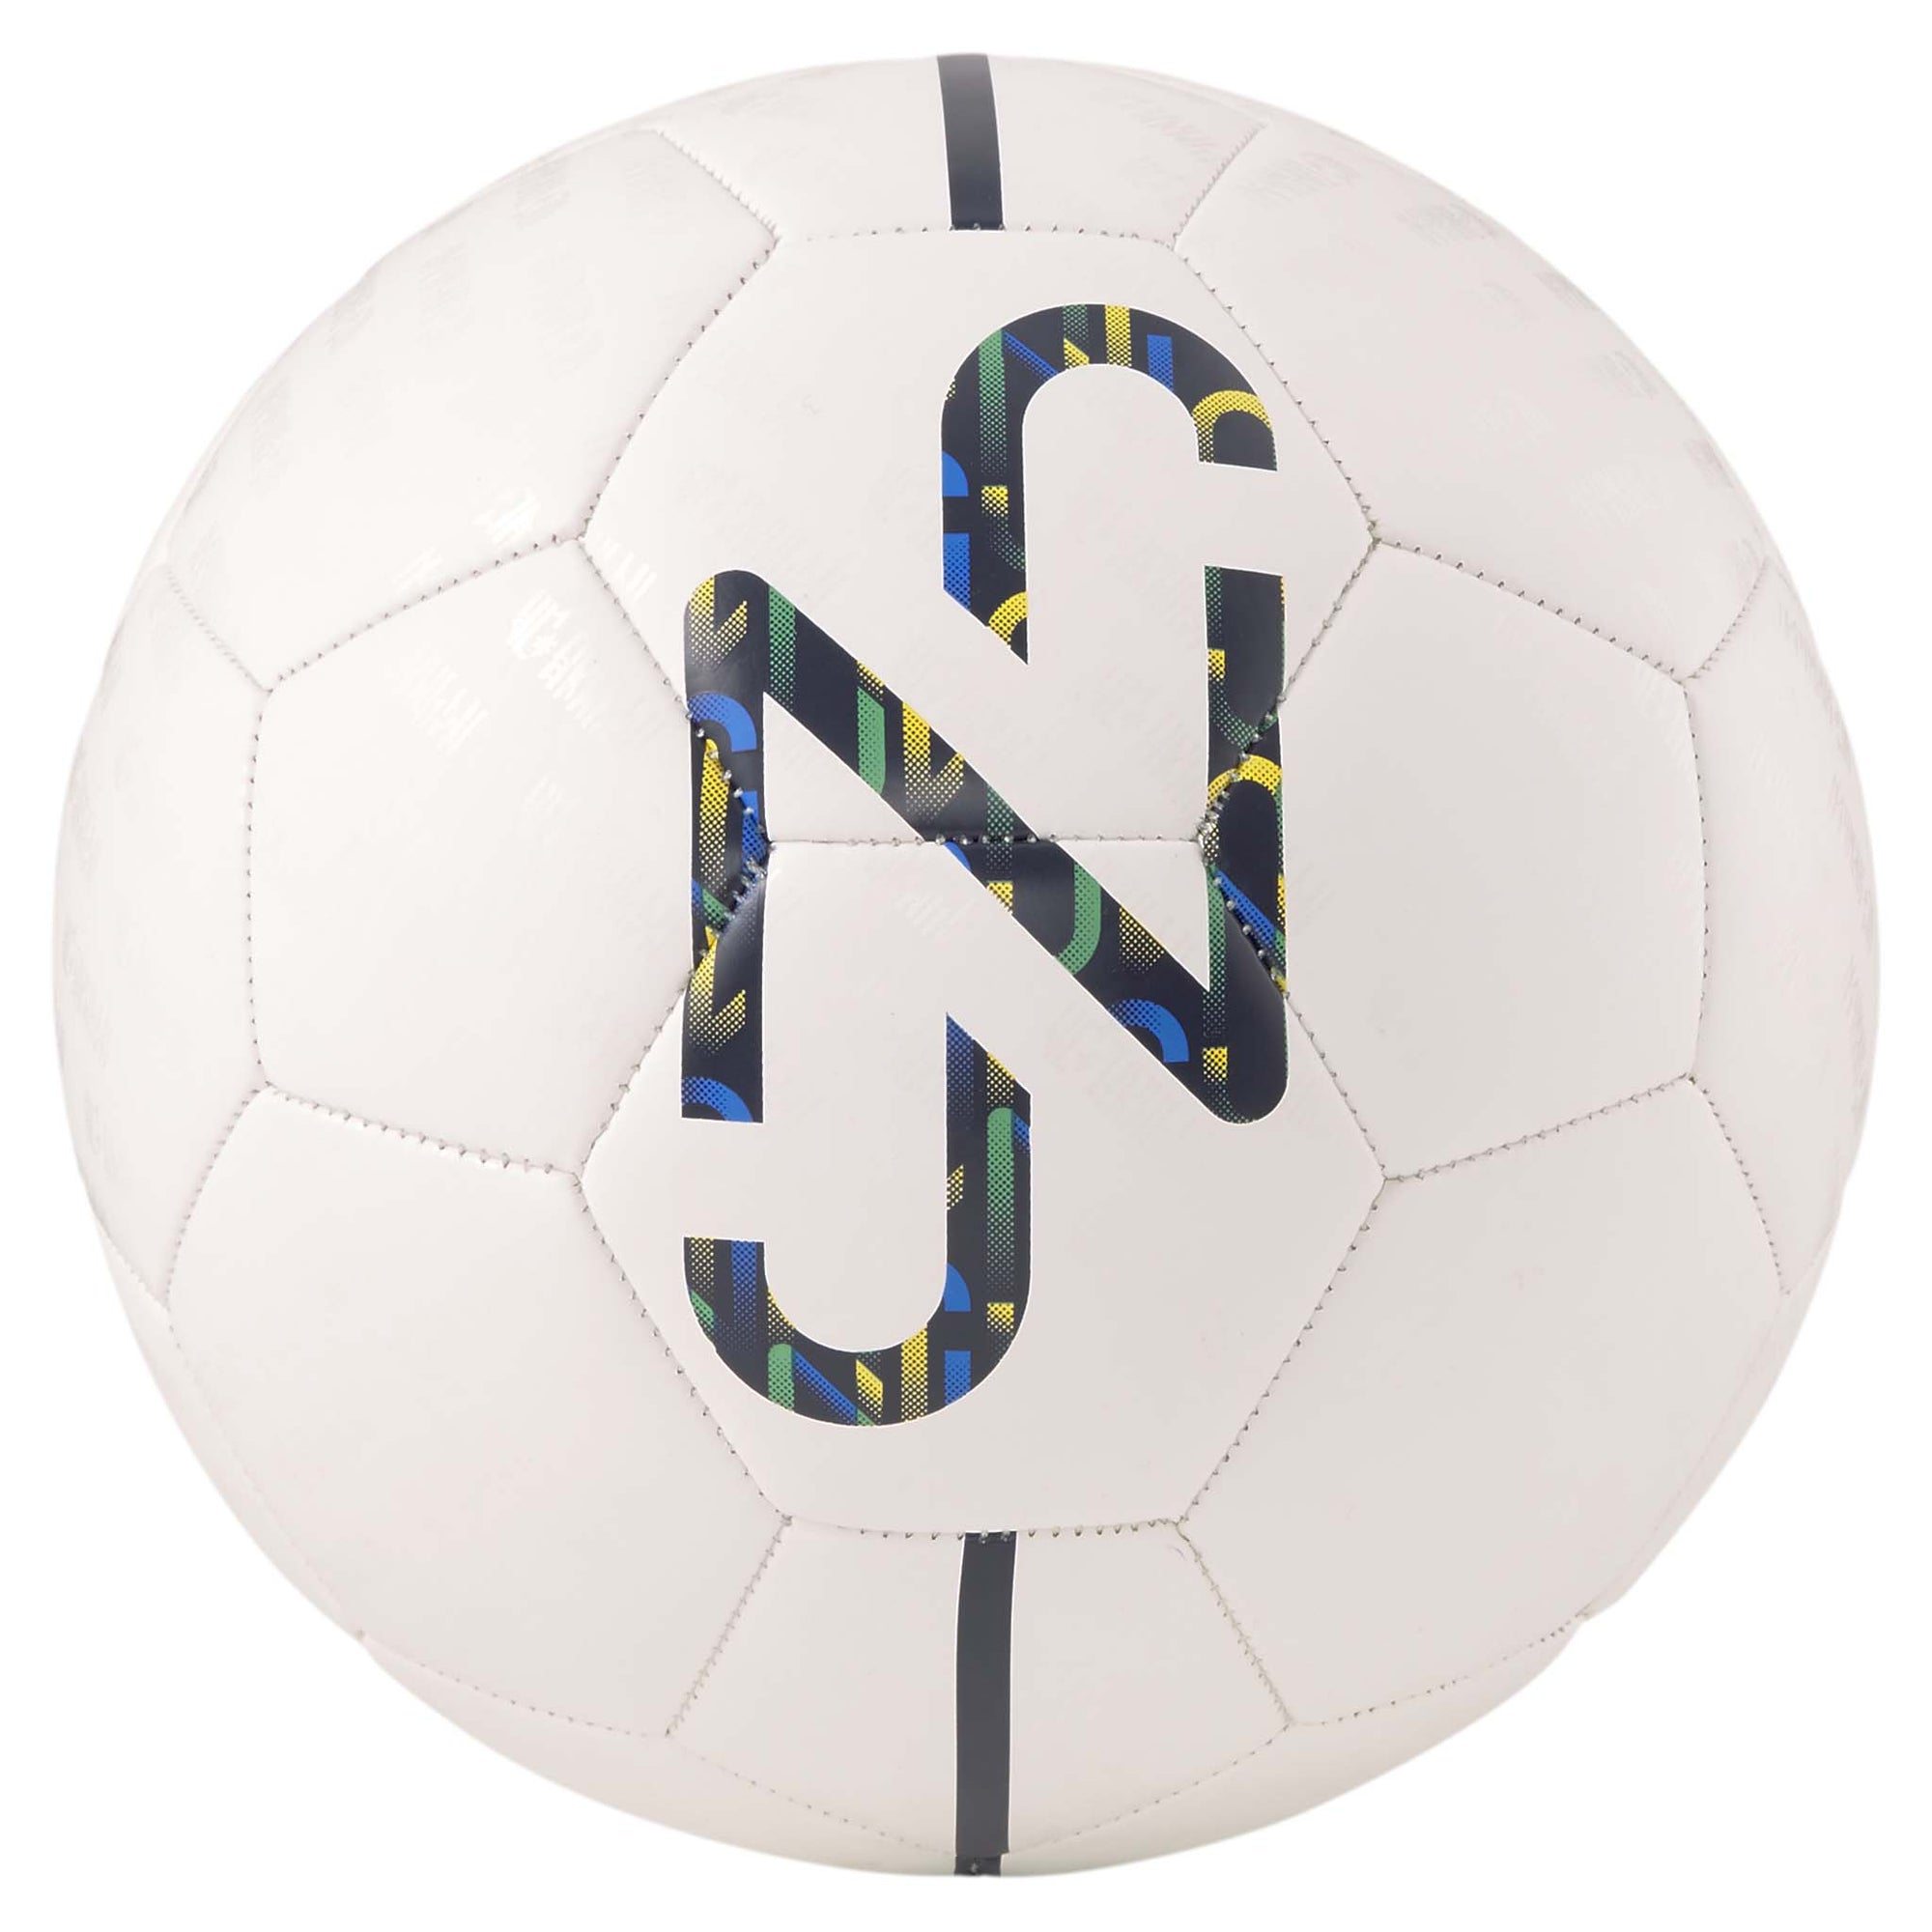 Puma NJR Fan Ball ballon de soccer Neymar Jr